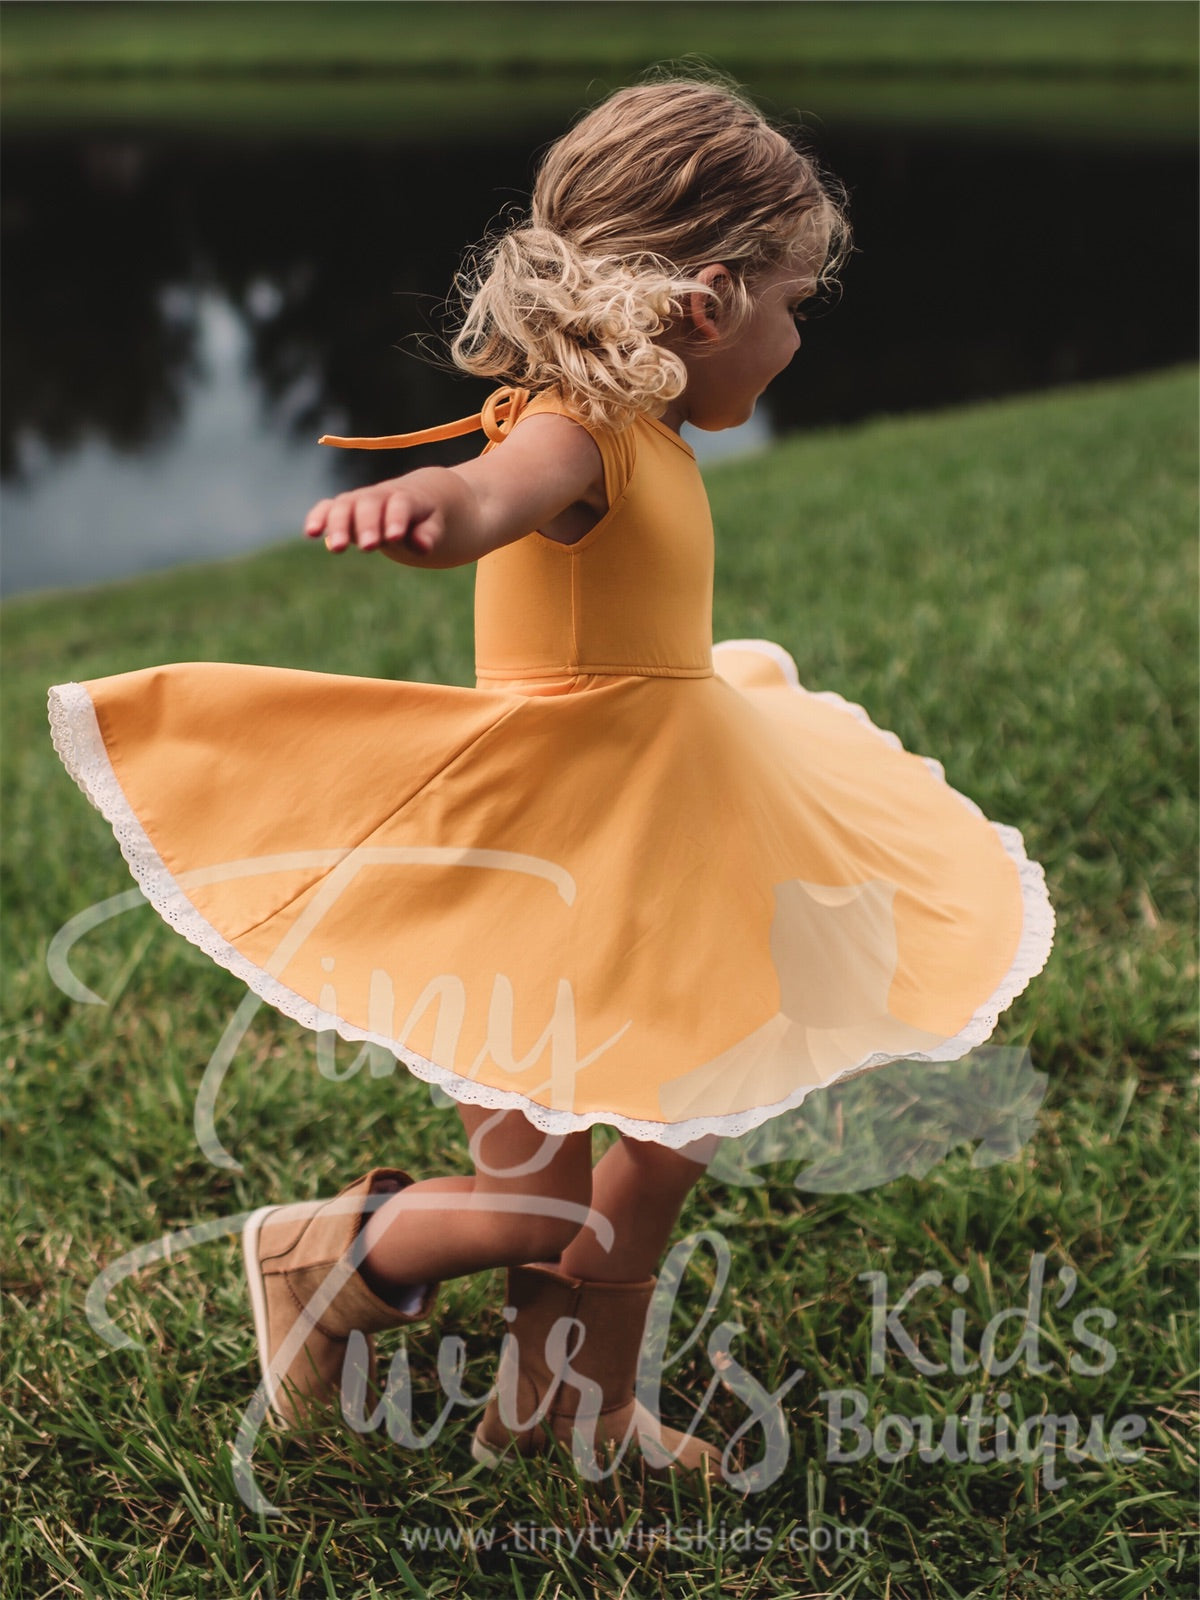 Gold Lace Trim Twirl Dress - In-Stock - Tiny Twirls Kids Boutique